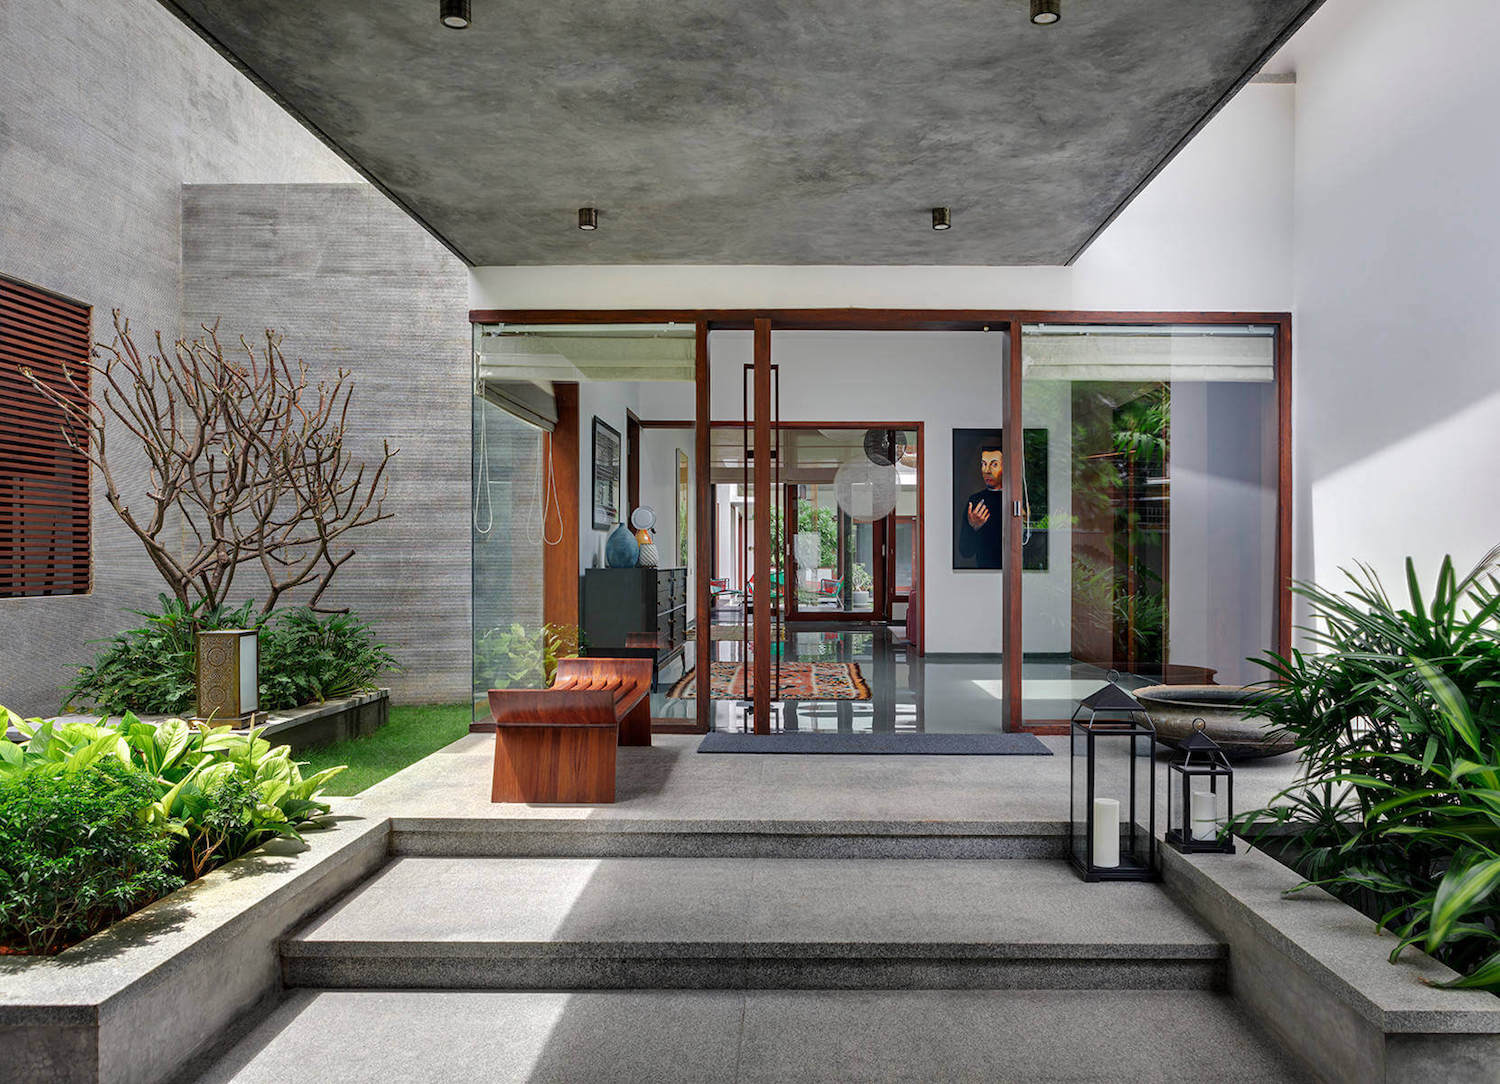 House 1058 Khosla Associates Cantilevered Timber Clad Staggered Rooms Oriented Towards  Internal Garden Caandesign 03